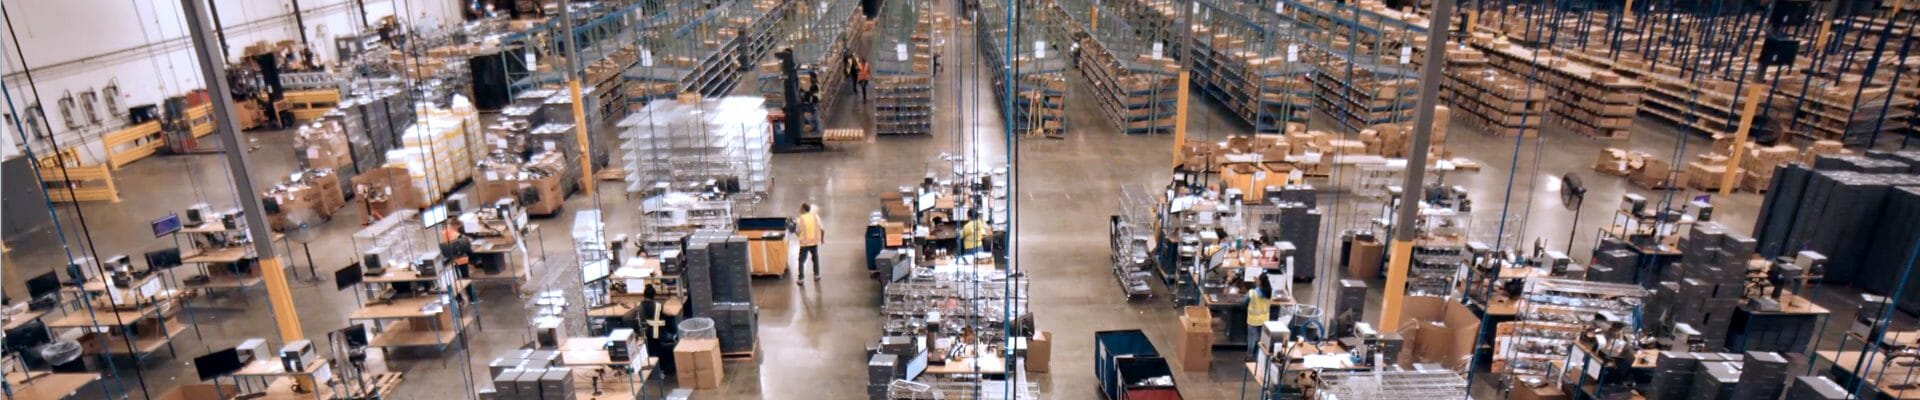 overview of order fulfillment in a warehouse